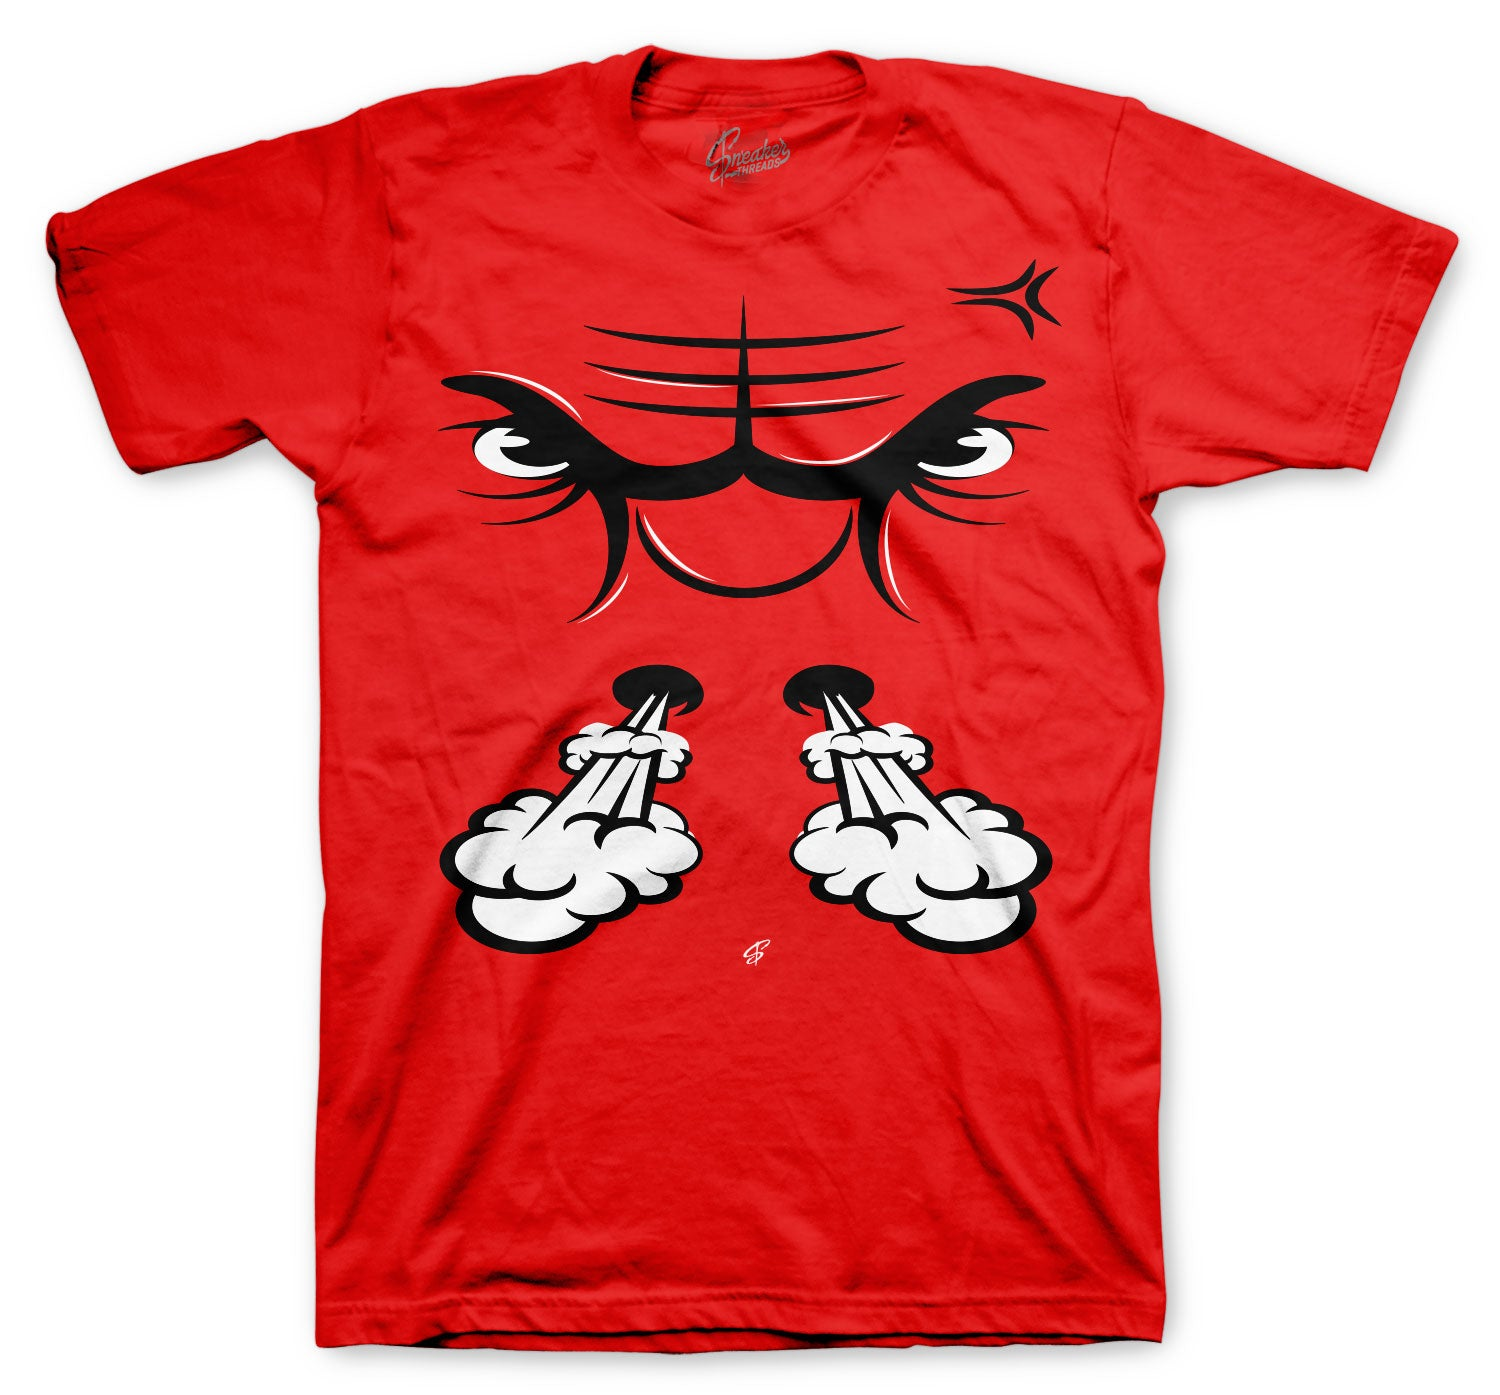 Jordan 1 AJKO Chicago Raging Face Shirts